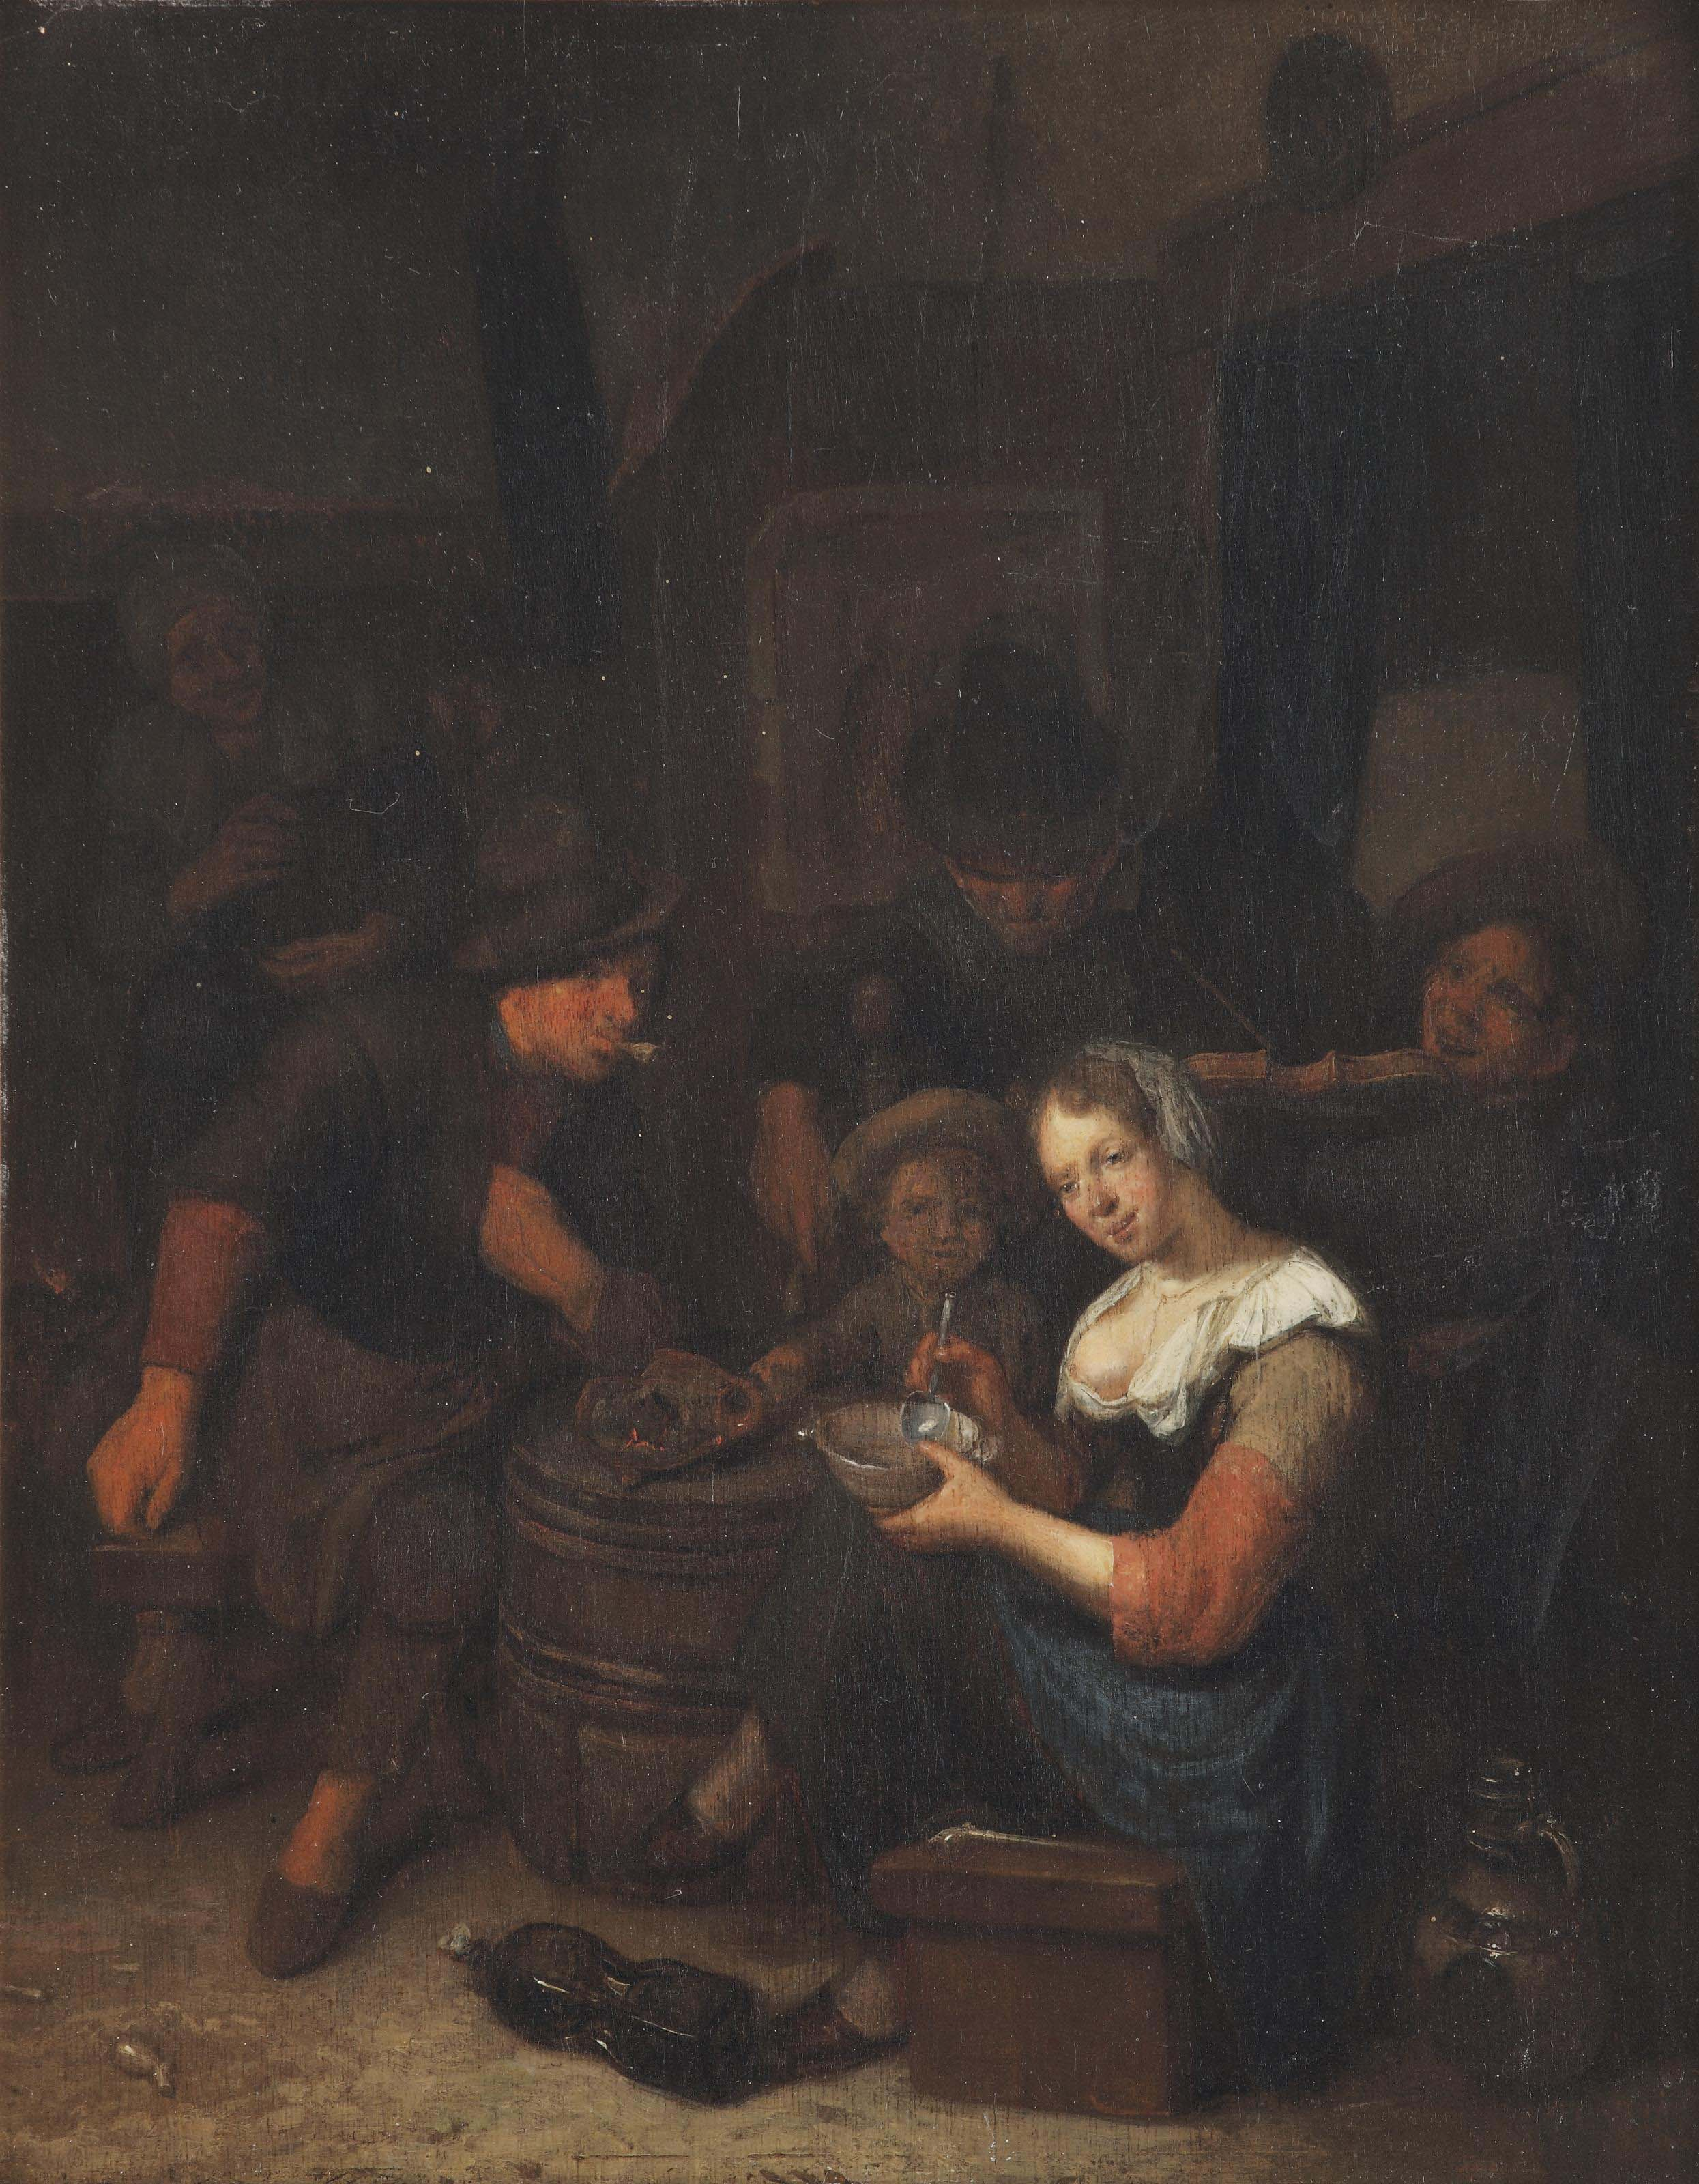 An interior with a merry company and a woman feeding porridge to a child